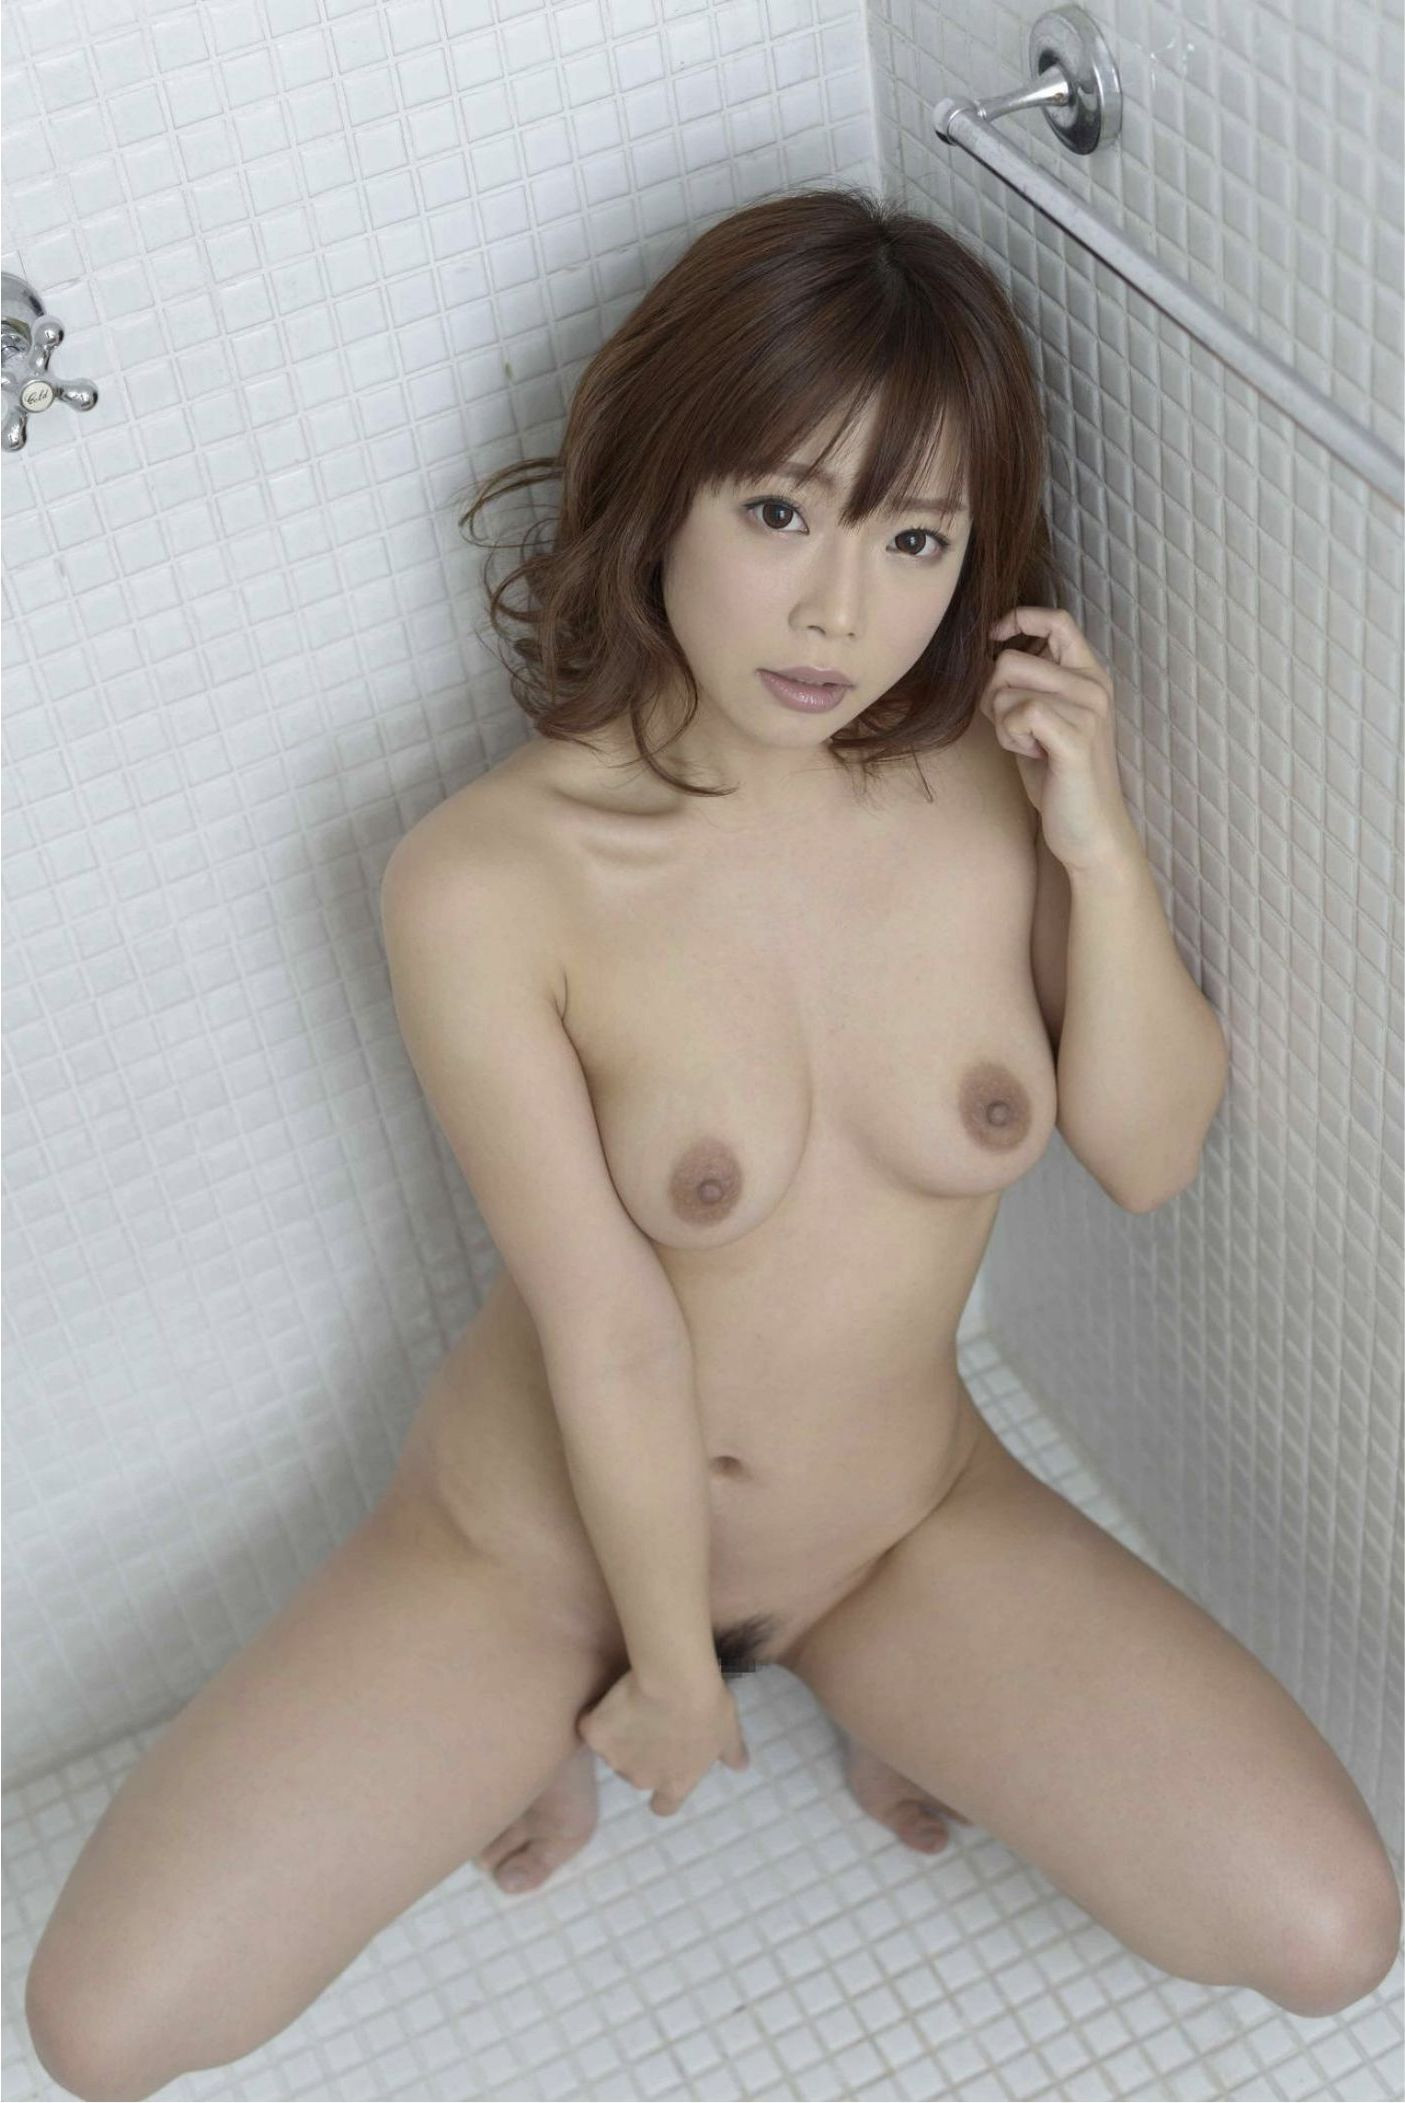 SOFT ON DEMAND GRAVURE COLLECTION 紗倉まな02 photo 129